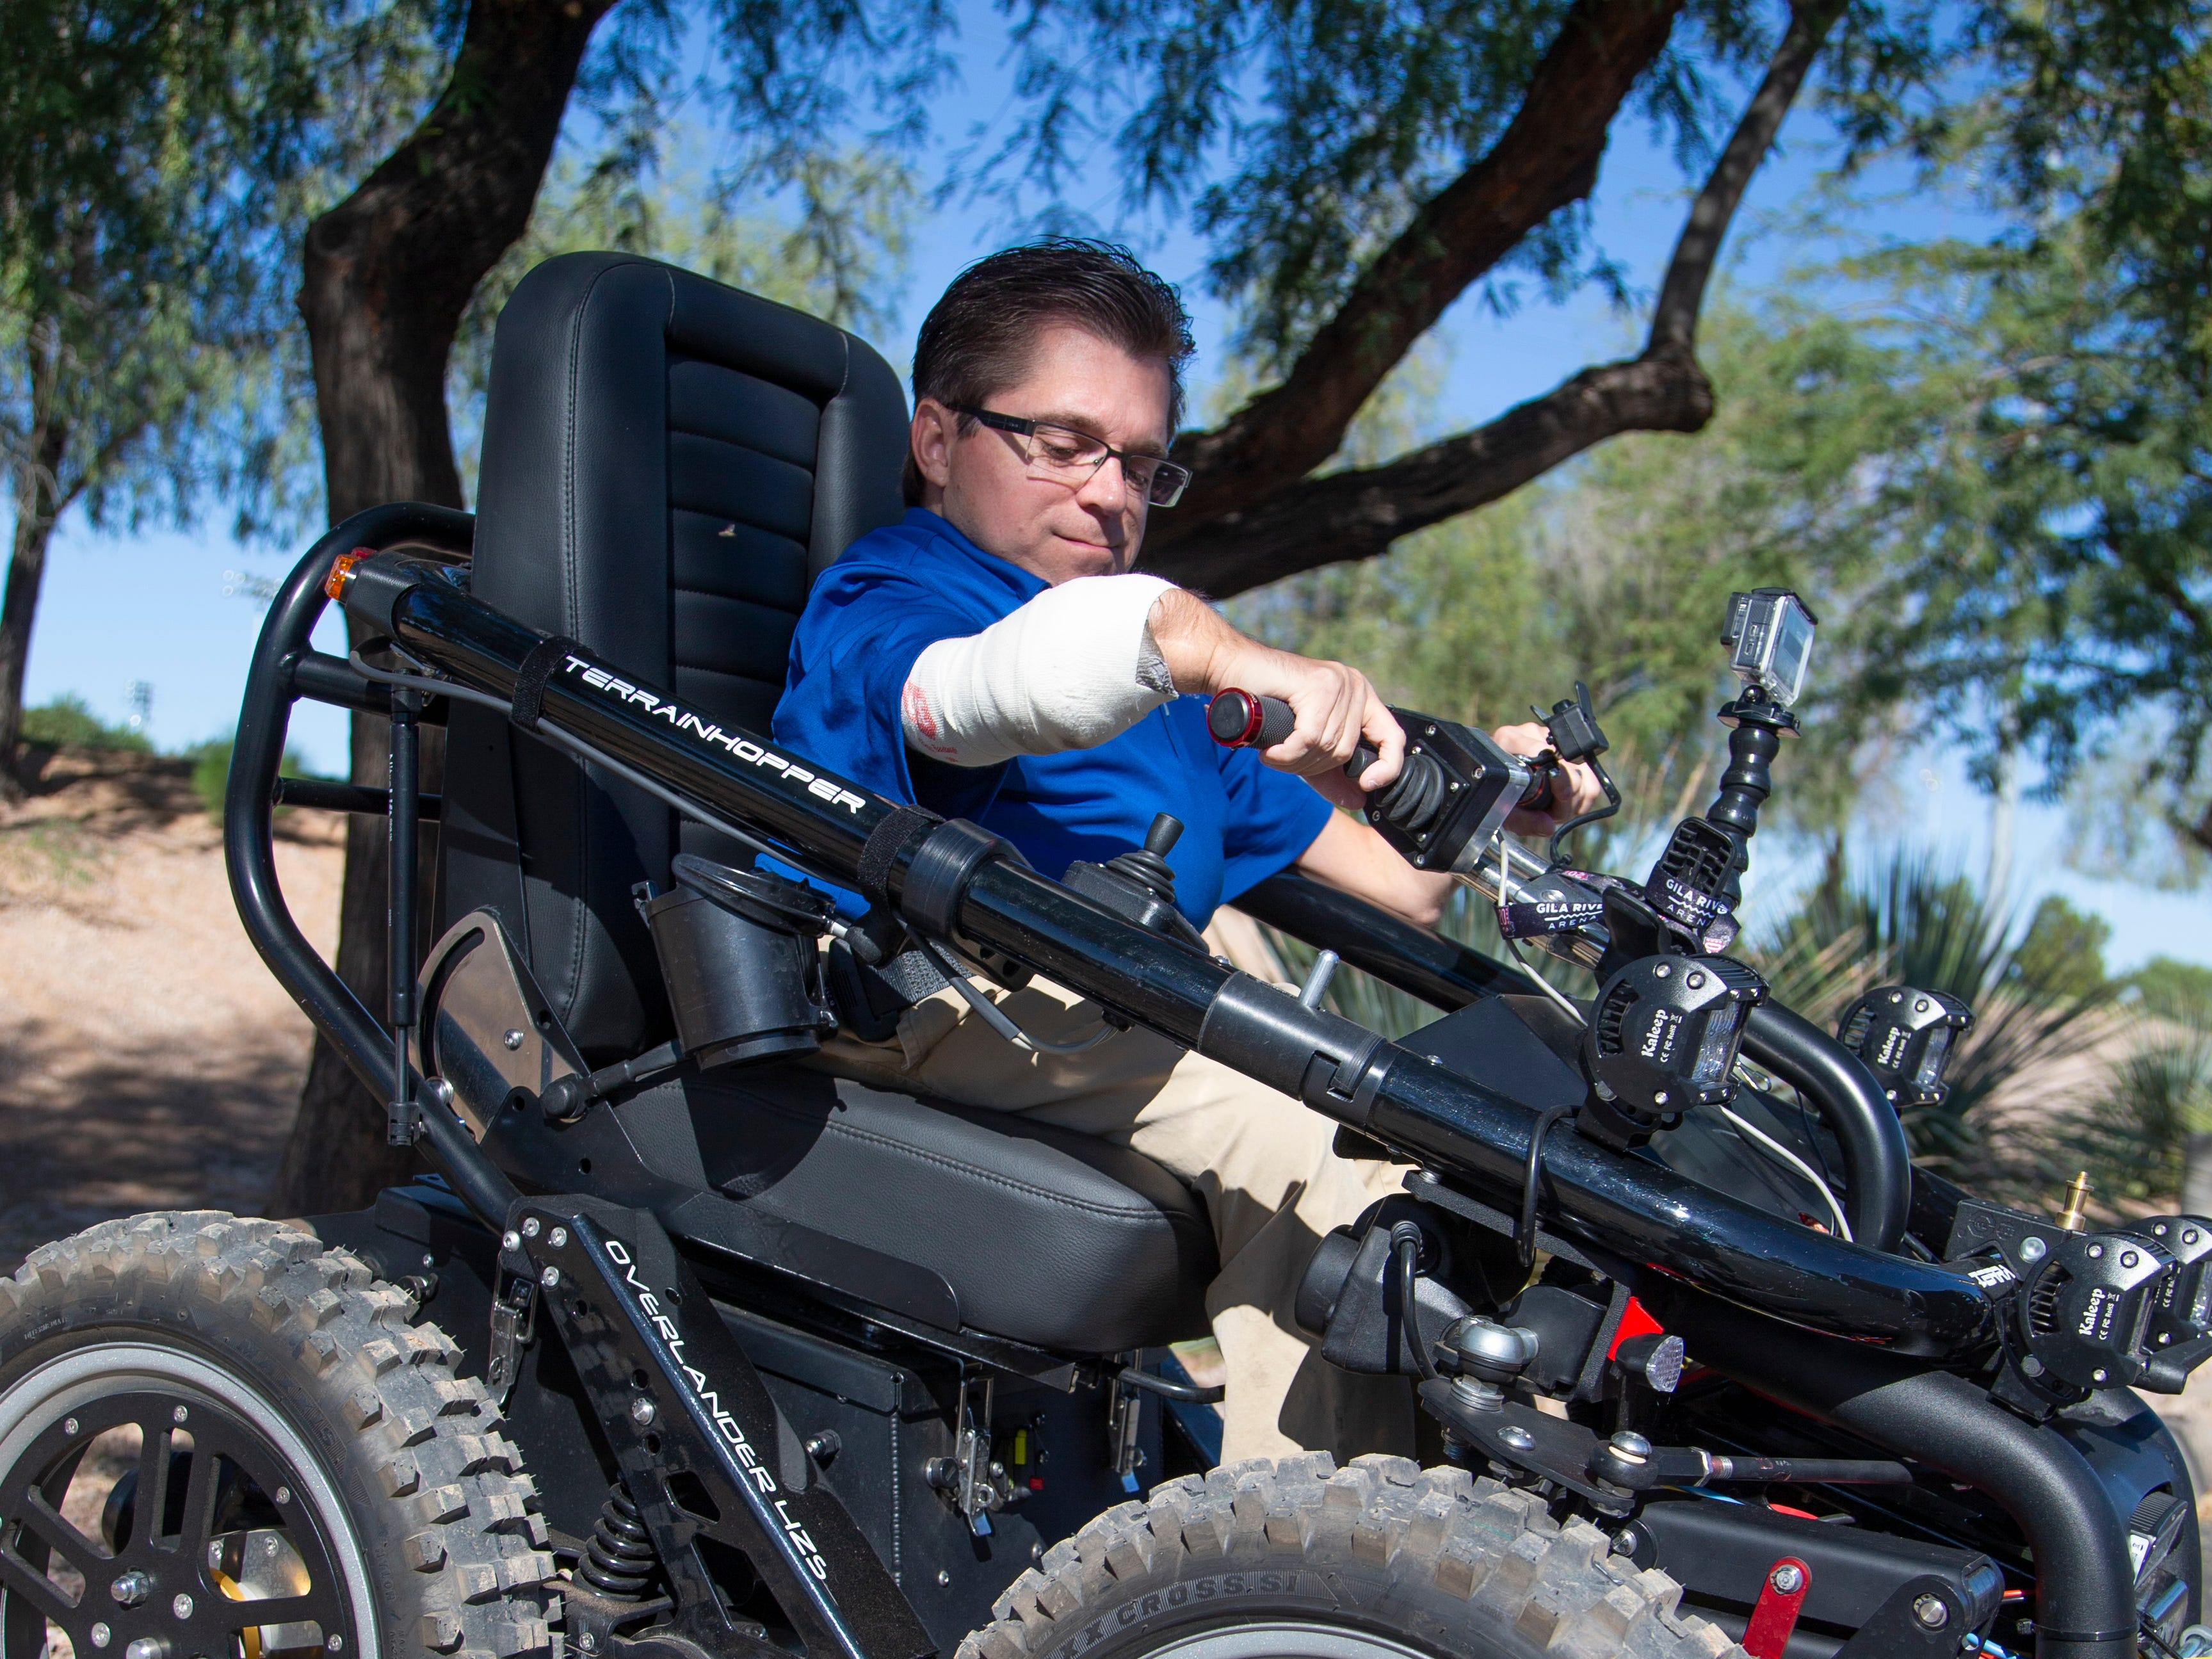 Todd Lemay, owner of TerrainHopper USA, demonstrates how the all-terrain vehicle works for people with disabilities or everyday mobility issues.